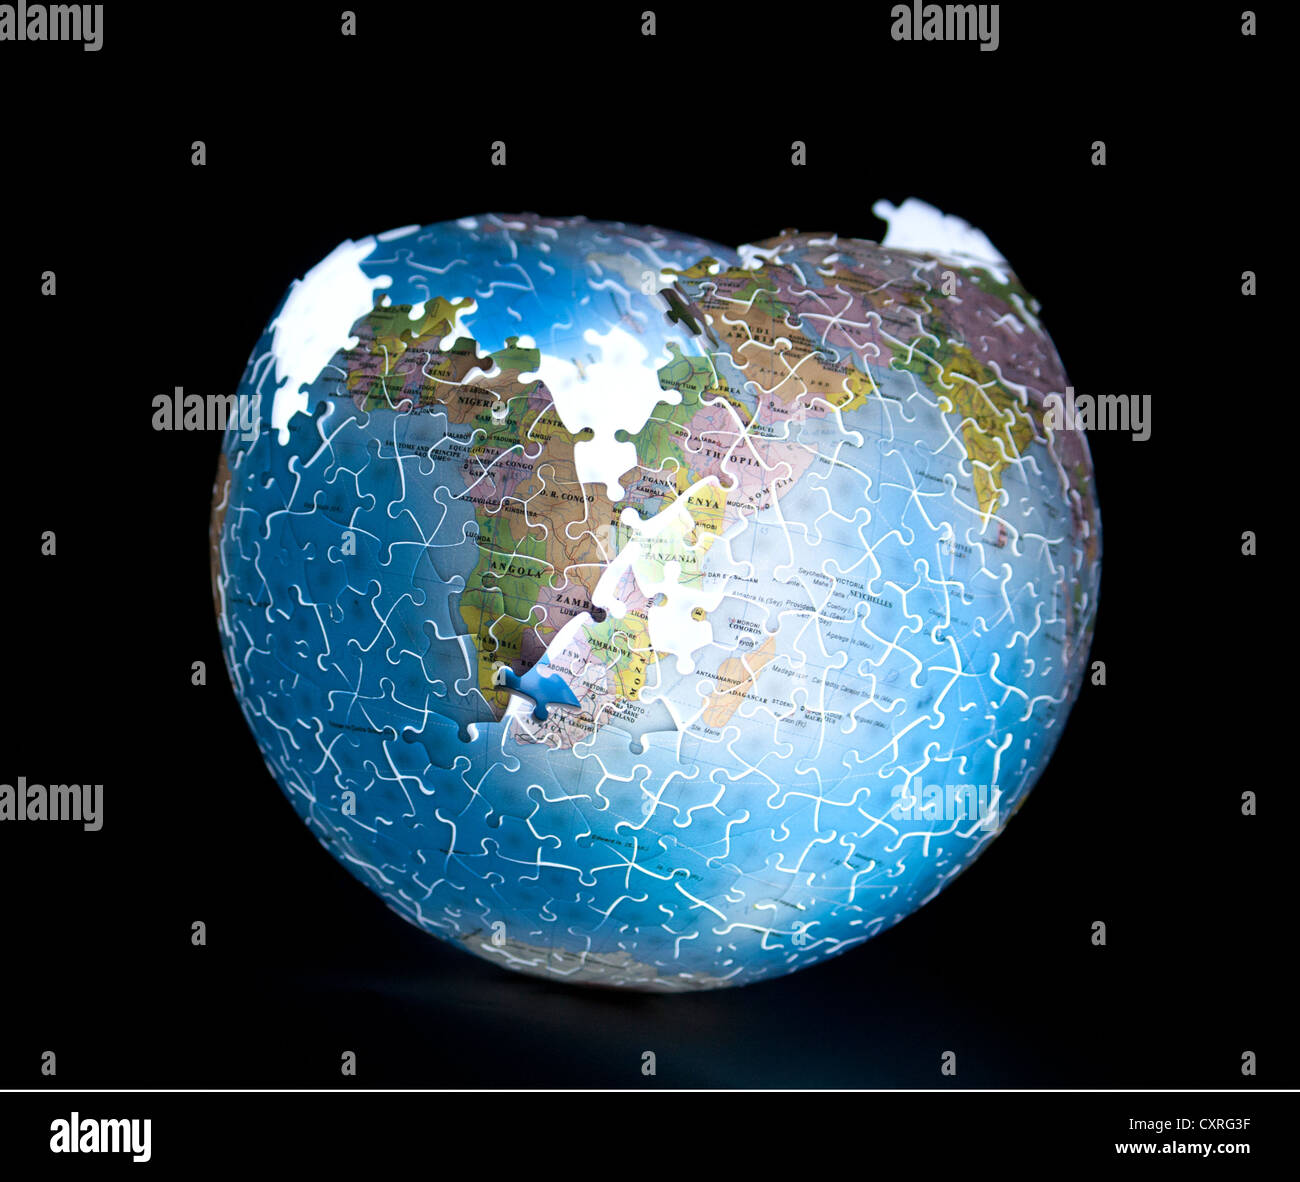 Plate Tectonics Globe High Resolution Stock Photography And Images Alamy